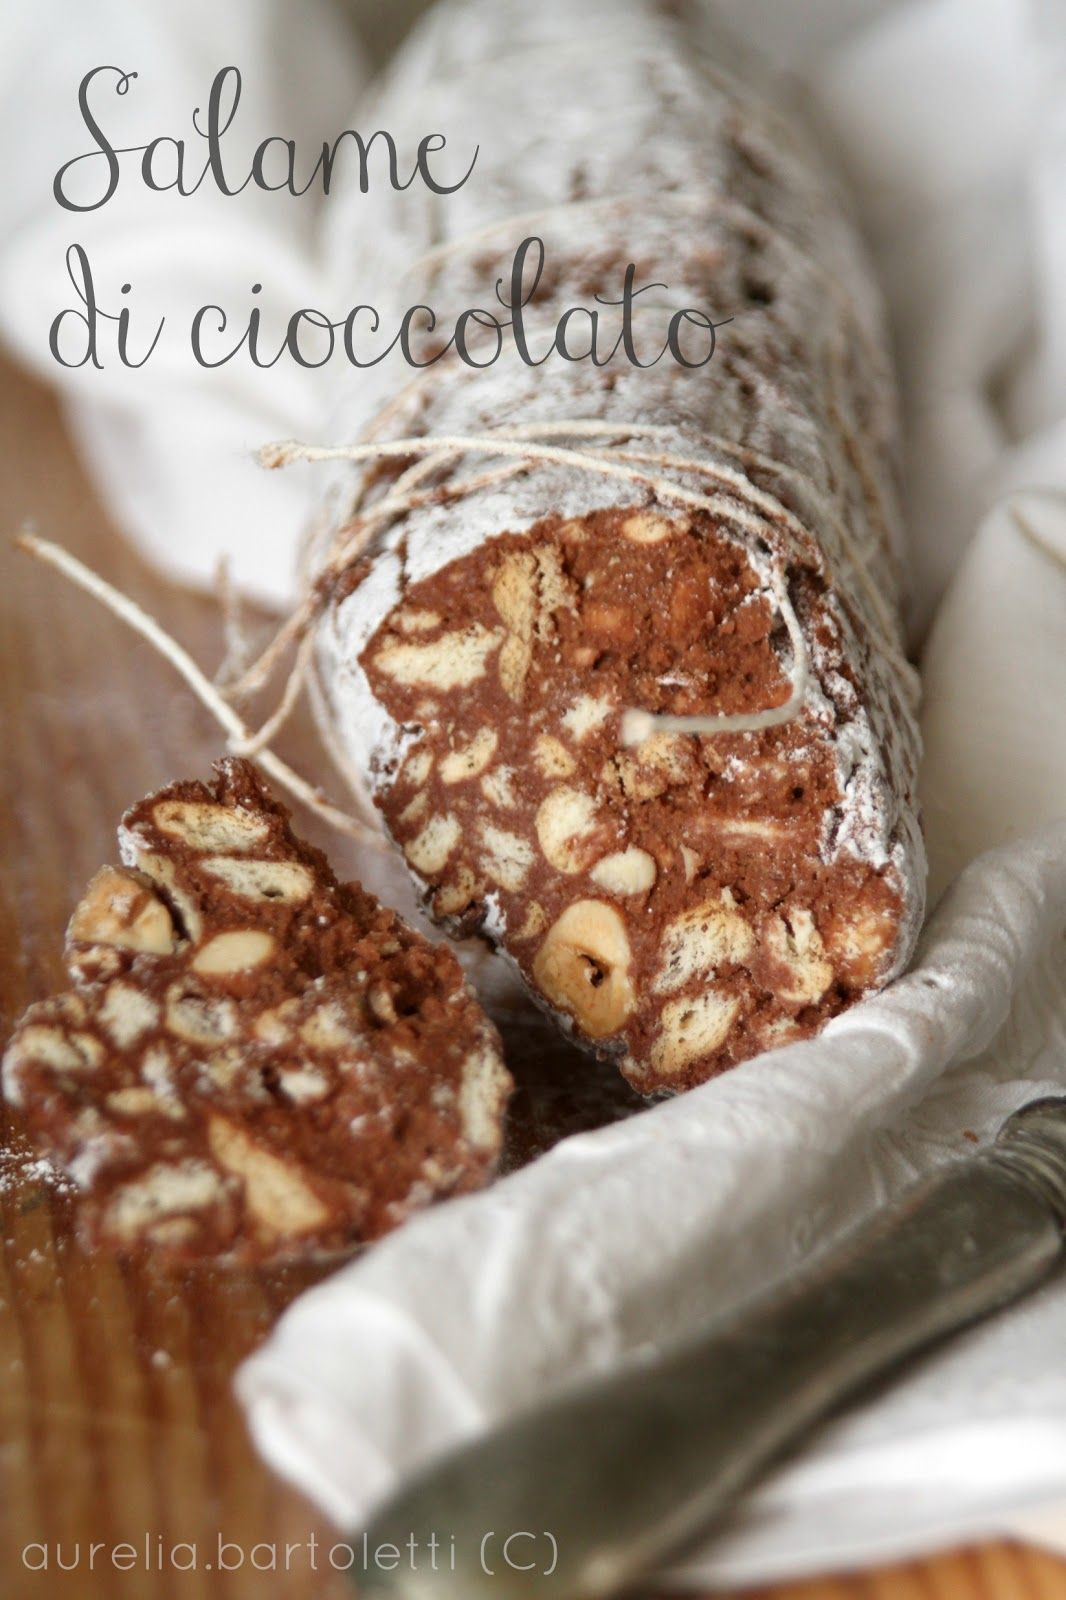 Profumi in cucina salame di cioccolato for the love of - Profumi in cucina ...